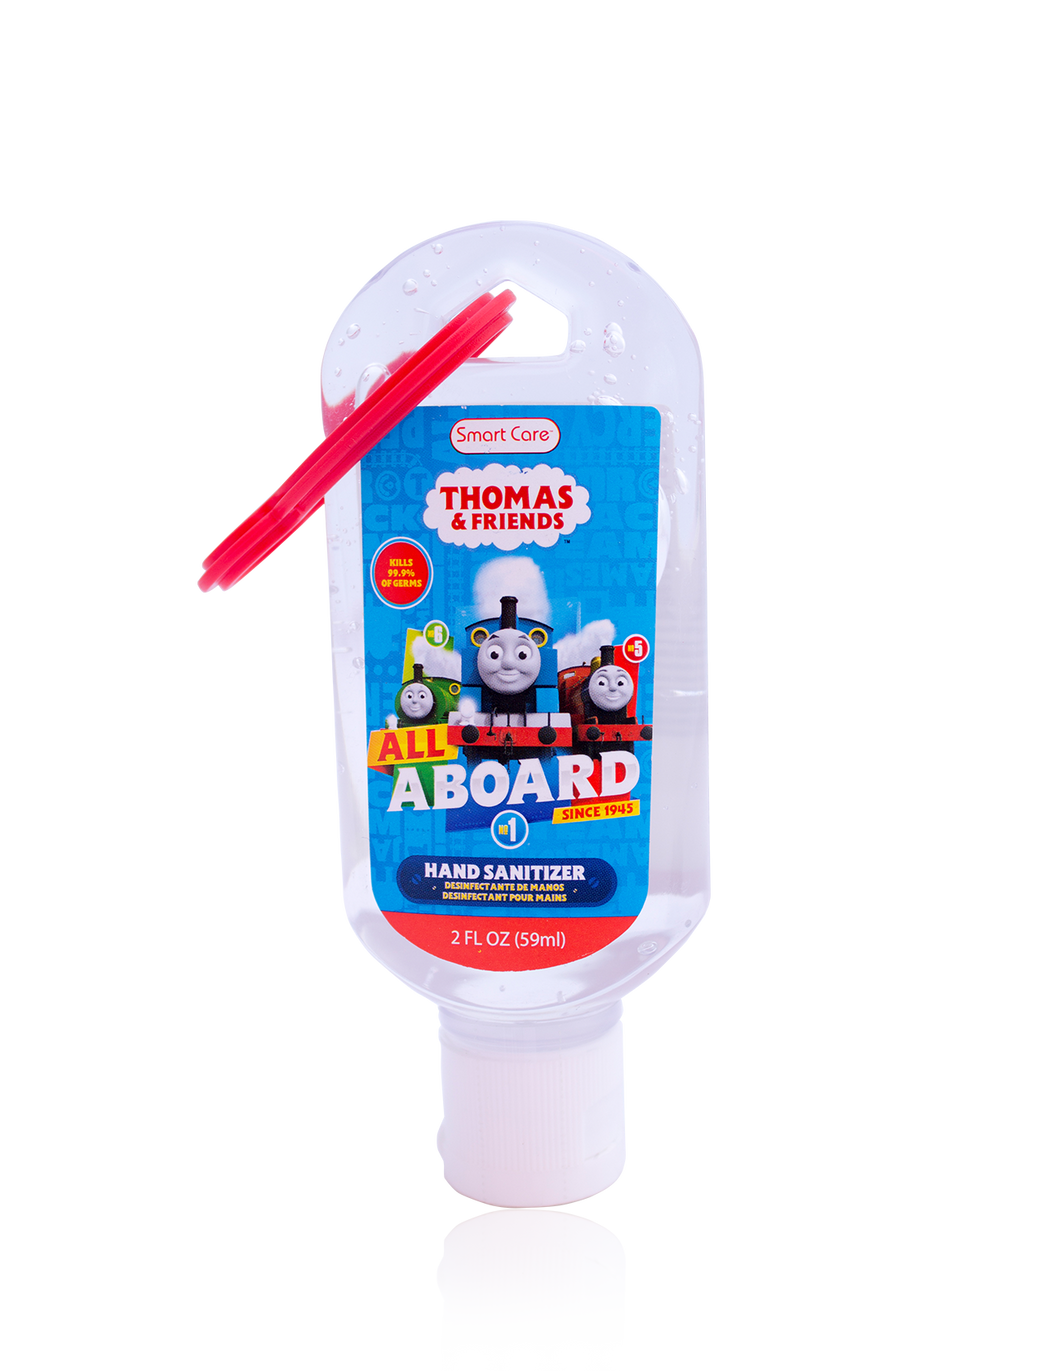 Smart Care Thomas & Friends Hand Sanitizer (2 Fl. Oz)